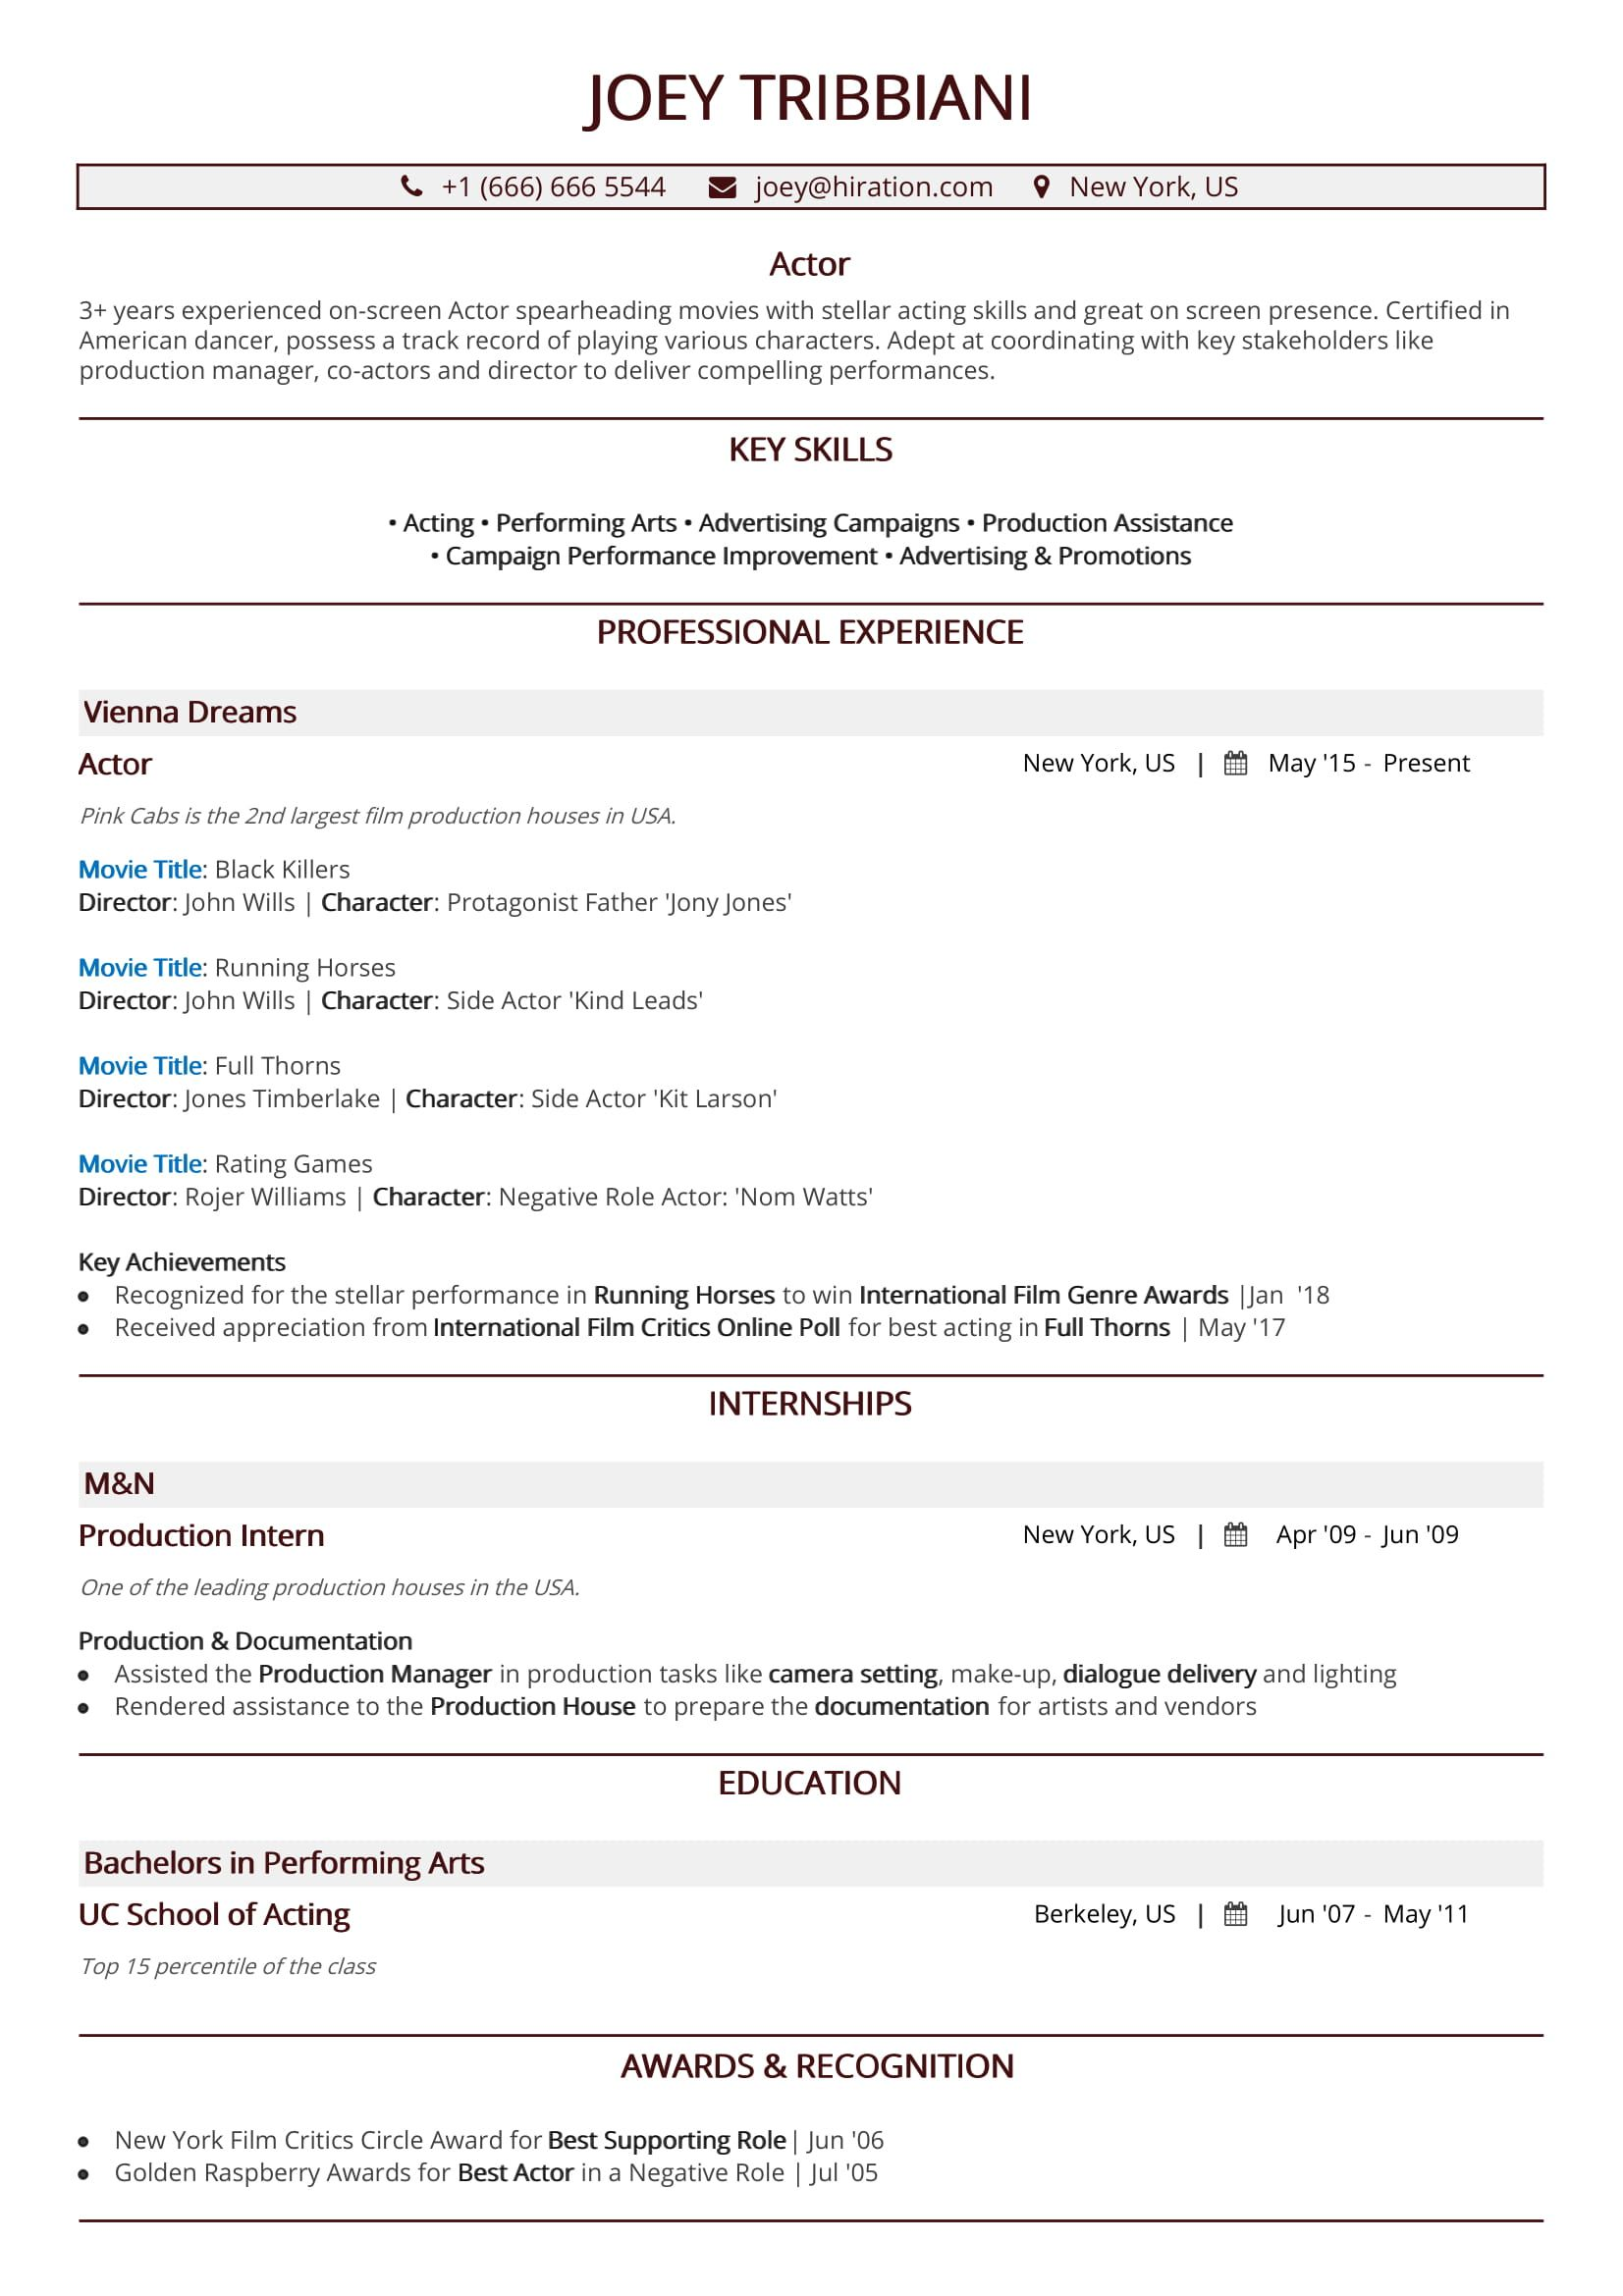 Steps To Make A Resume Acting Resume In 2019 A 10 Step Guide To Actor Resume With Samples